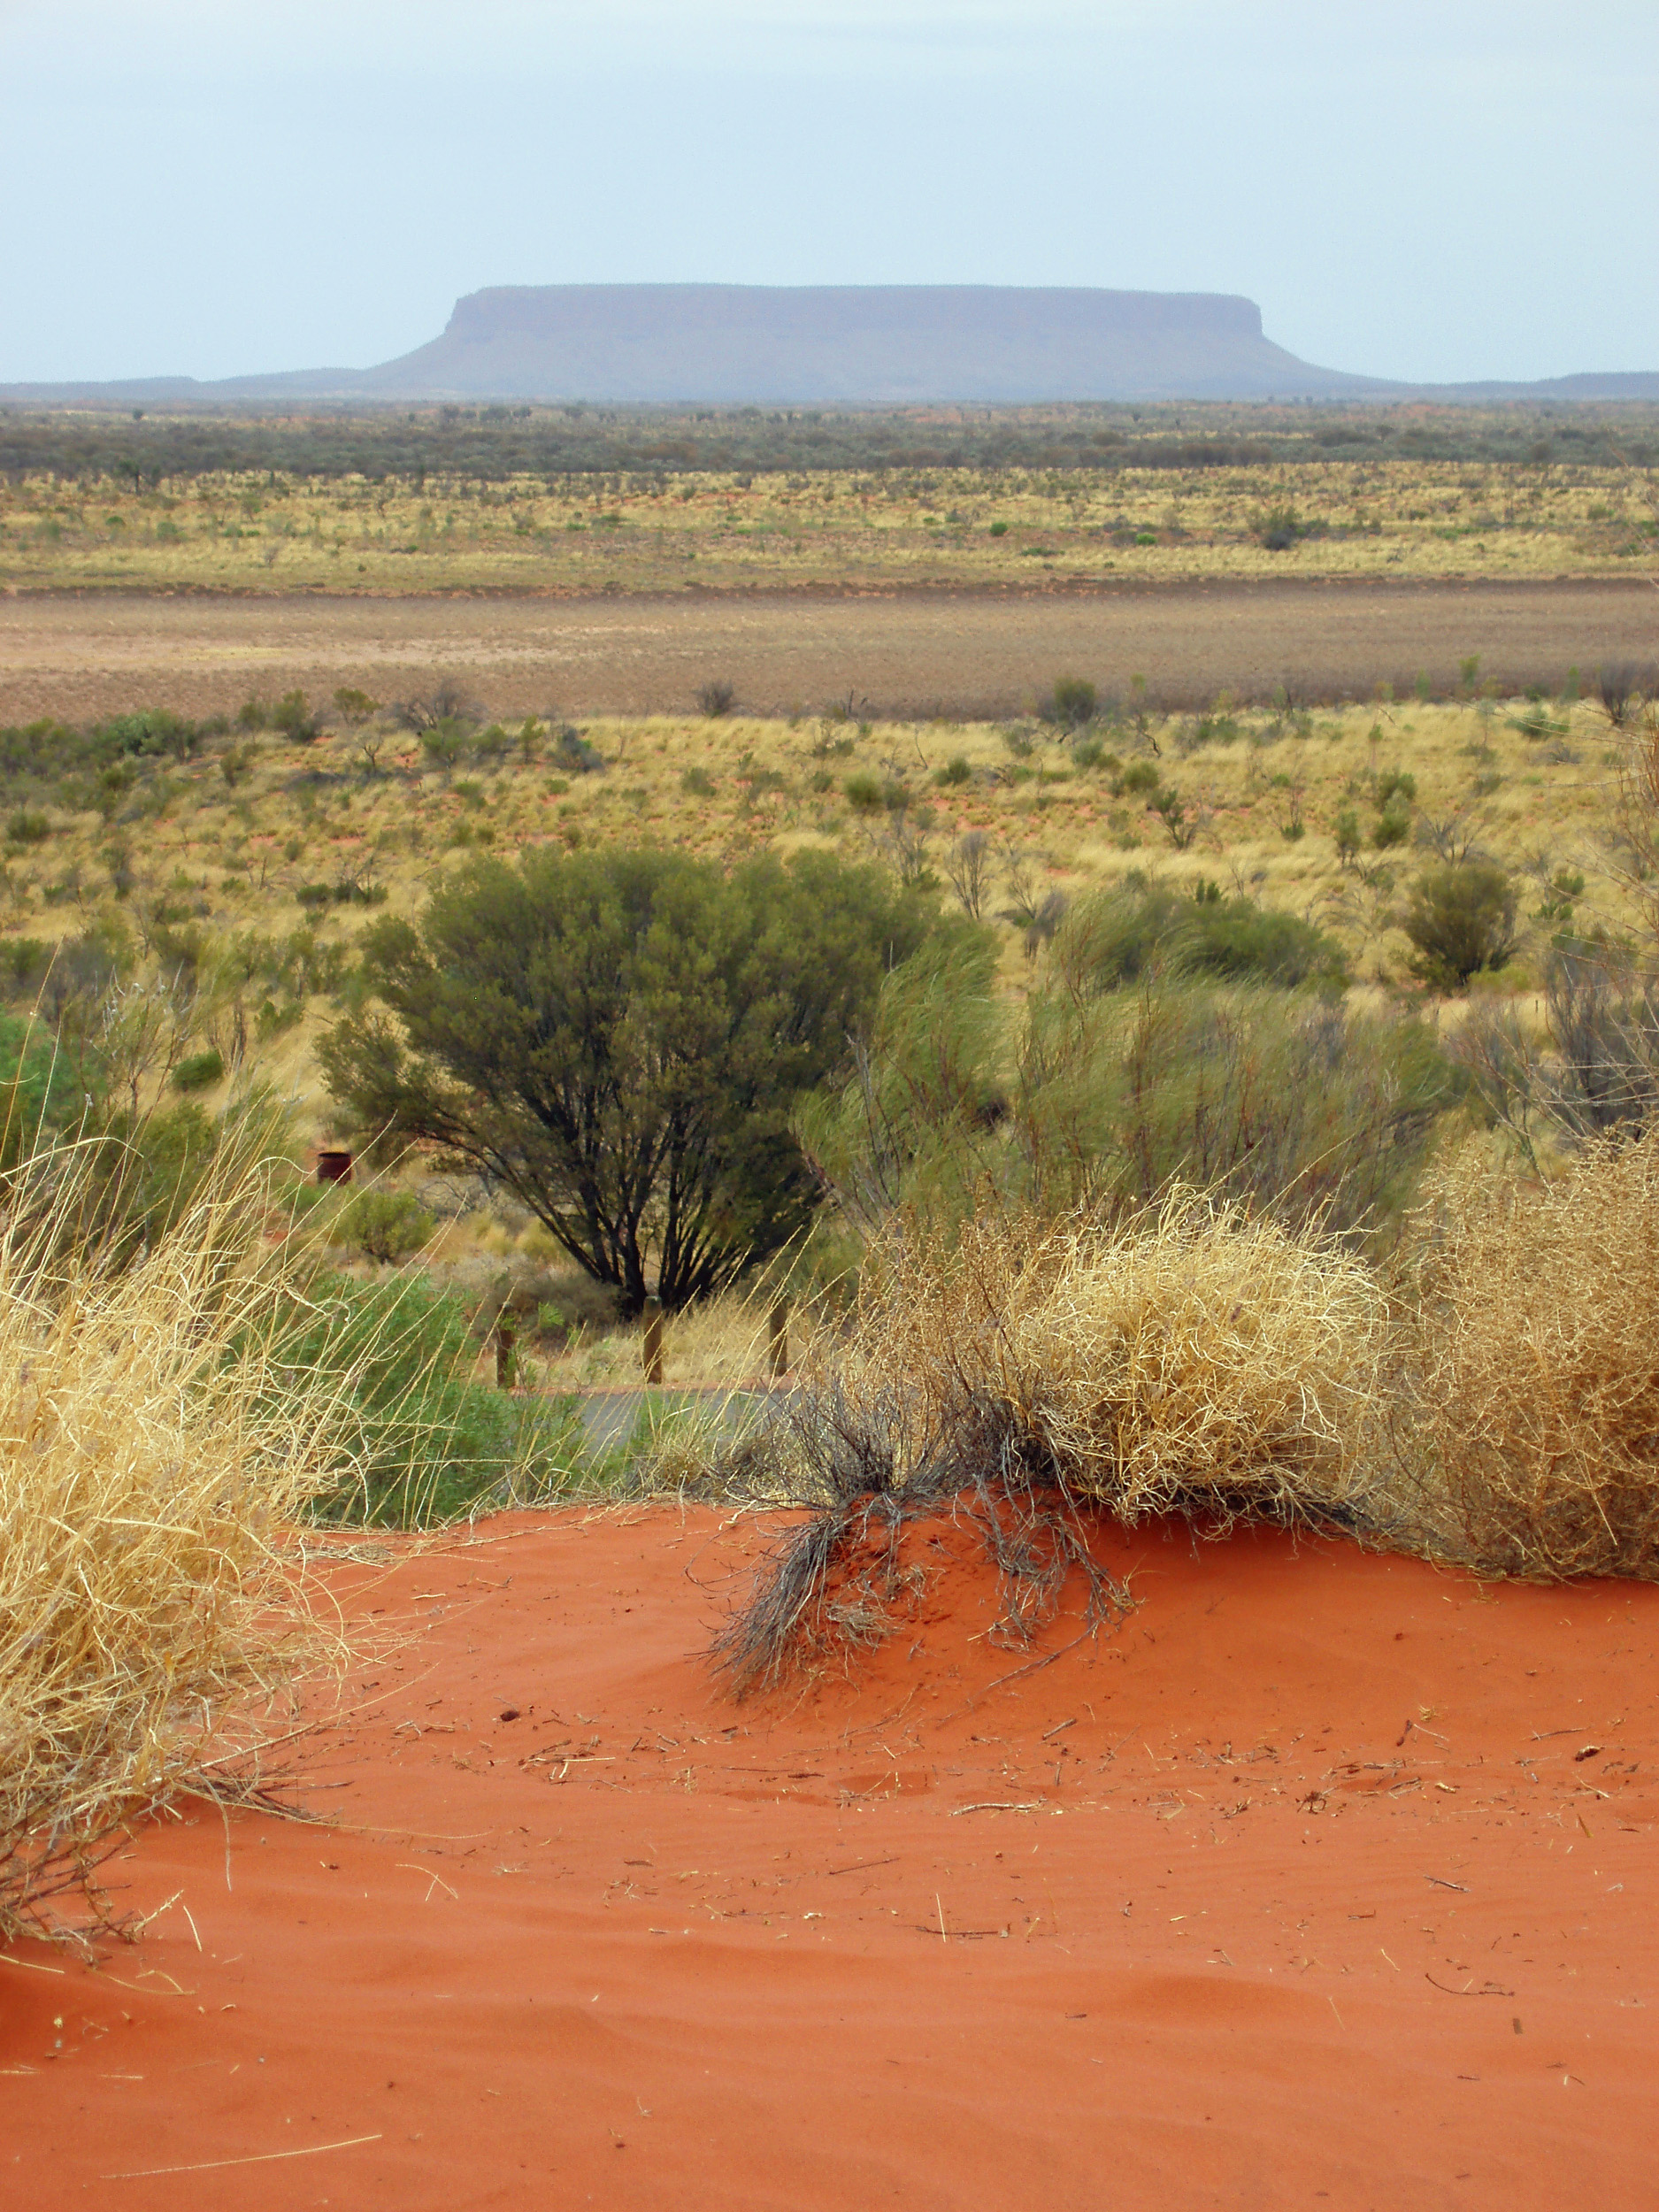 mount connor or mt conner is a flat topped mountain sometimes mistaken for uluru - ayres rock